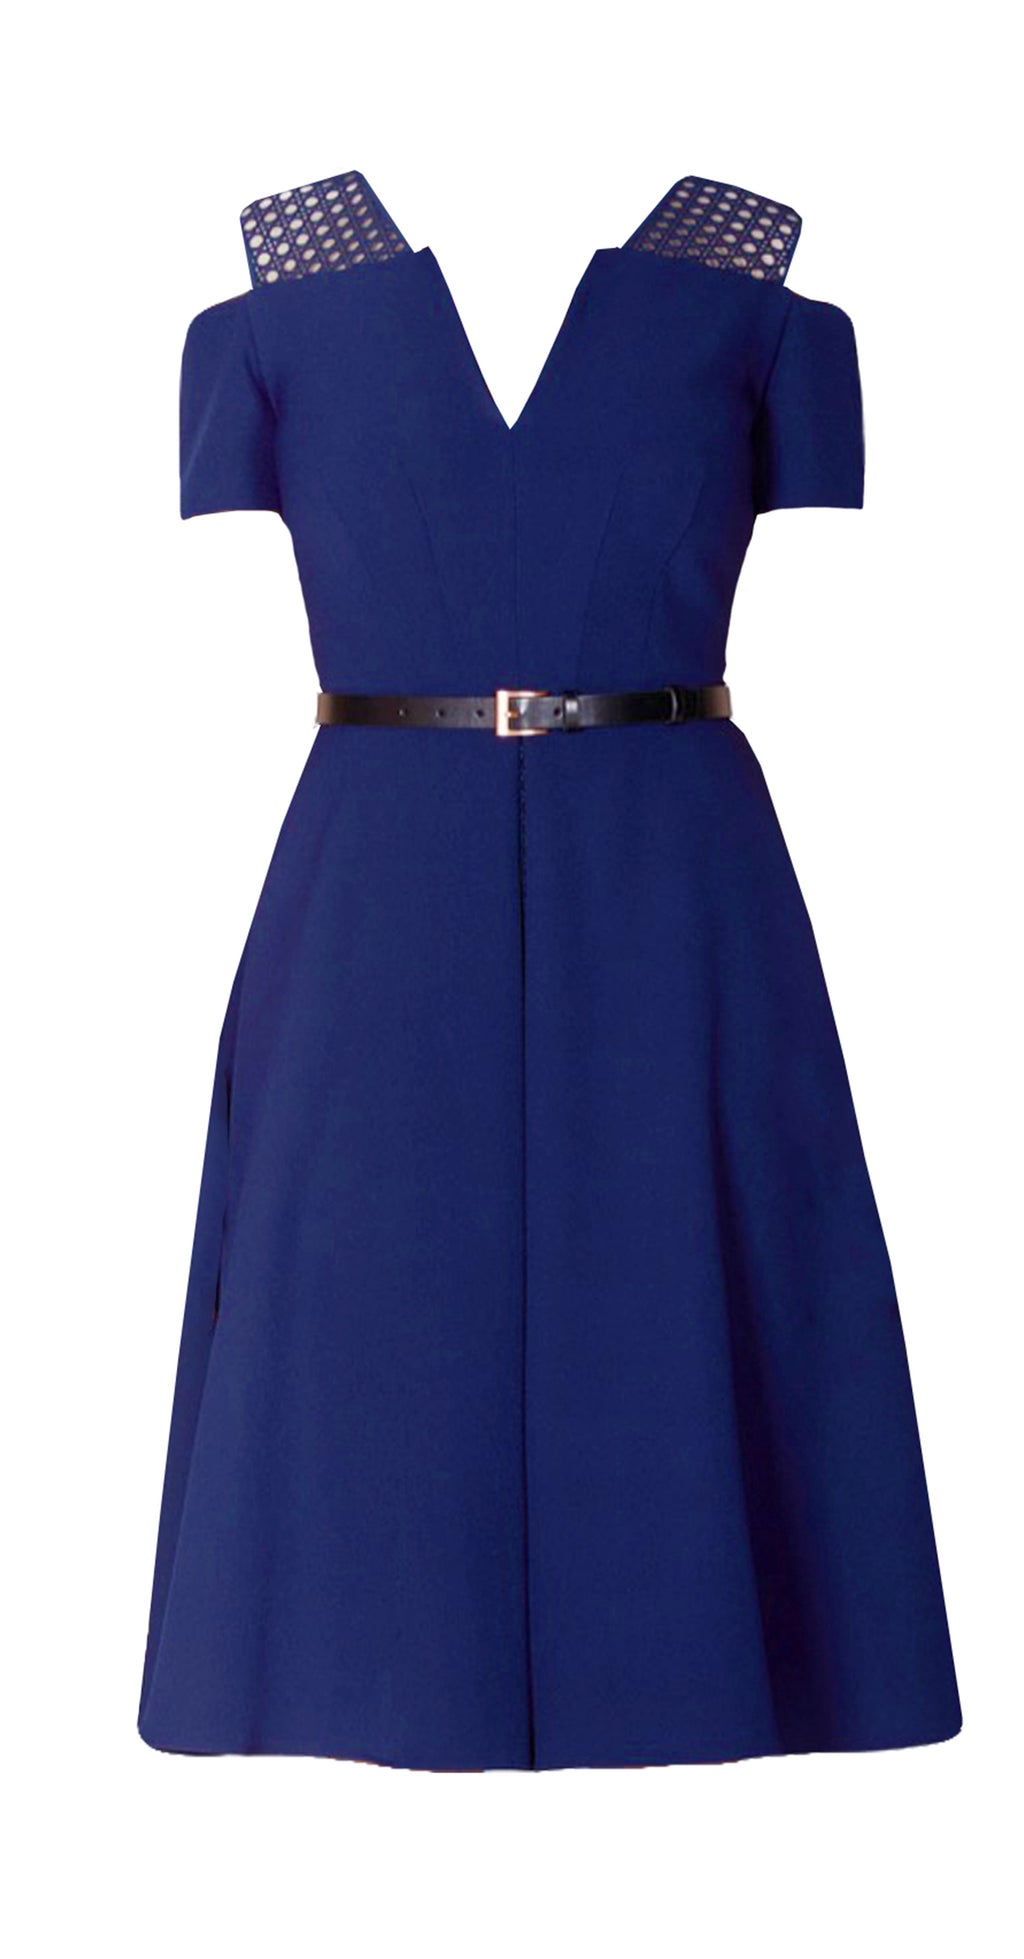 Iviron Dress DRC223 Navy/Lace Contrast With Belt Sample, Size 8